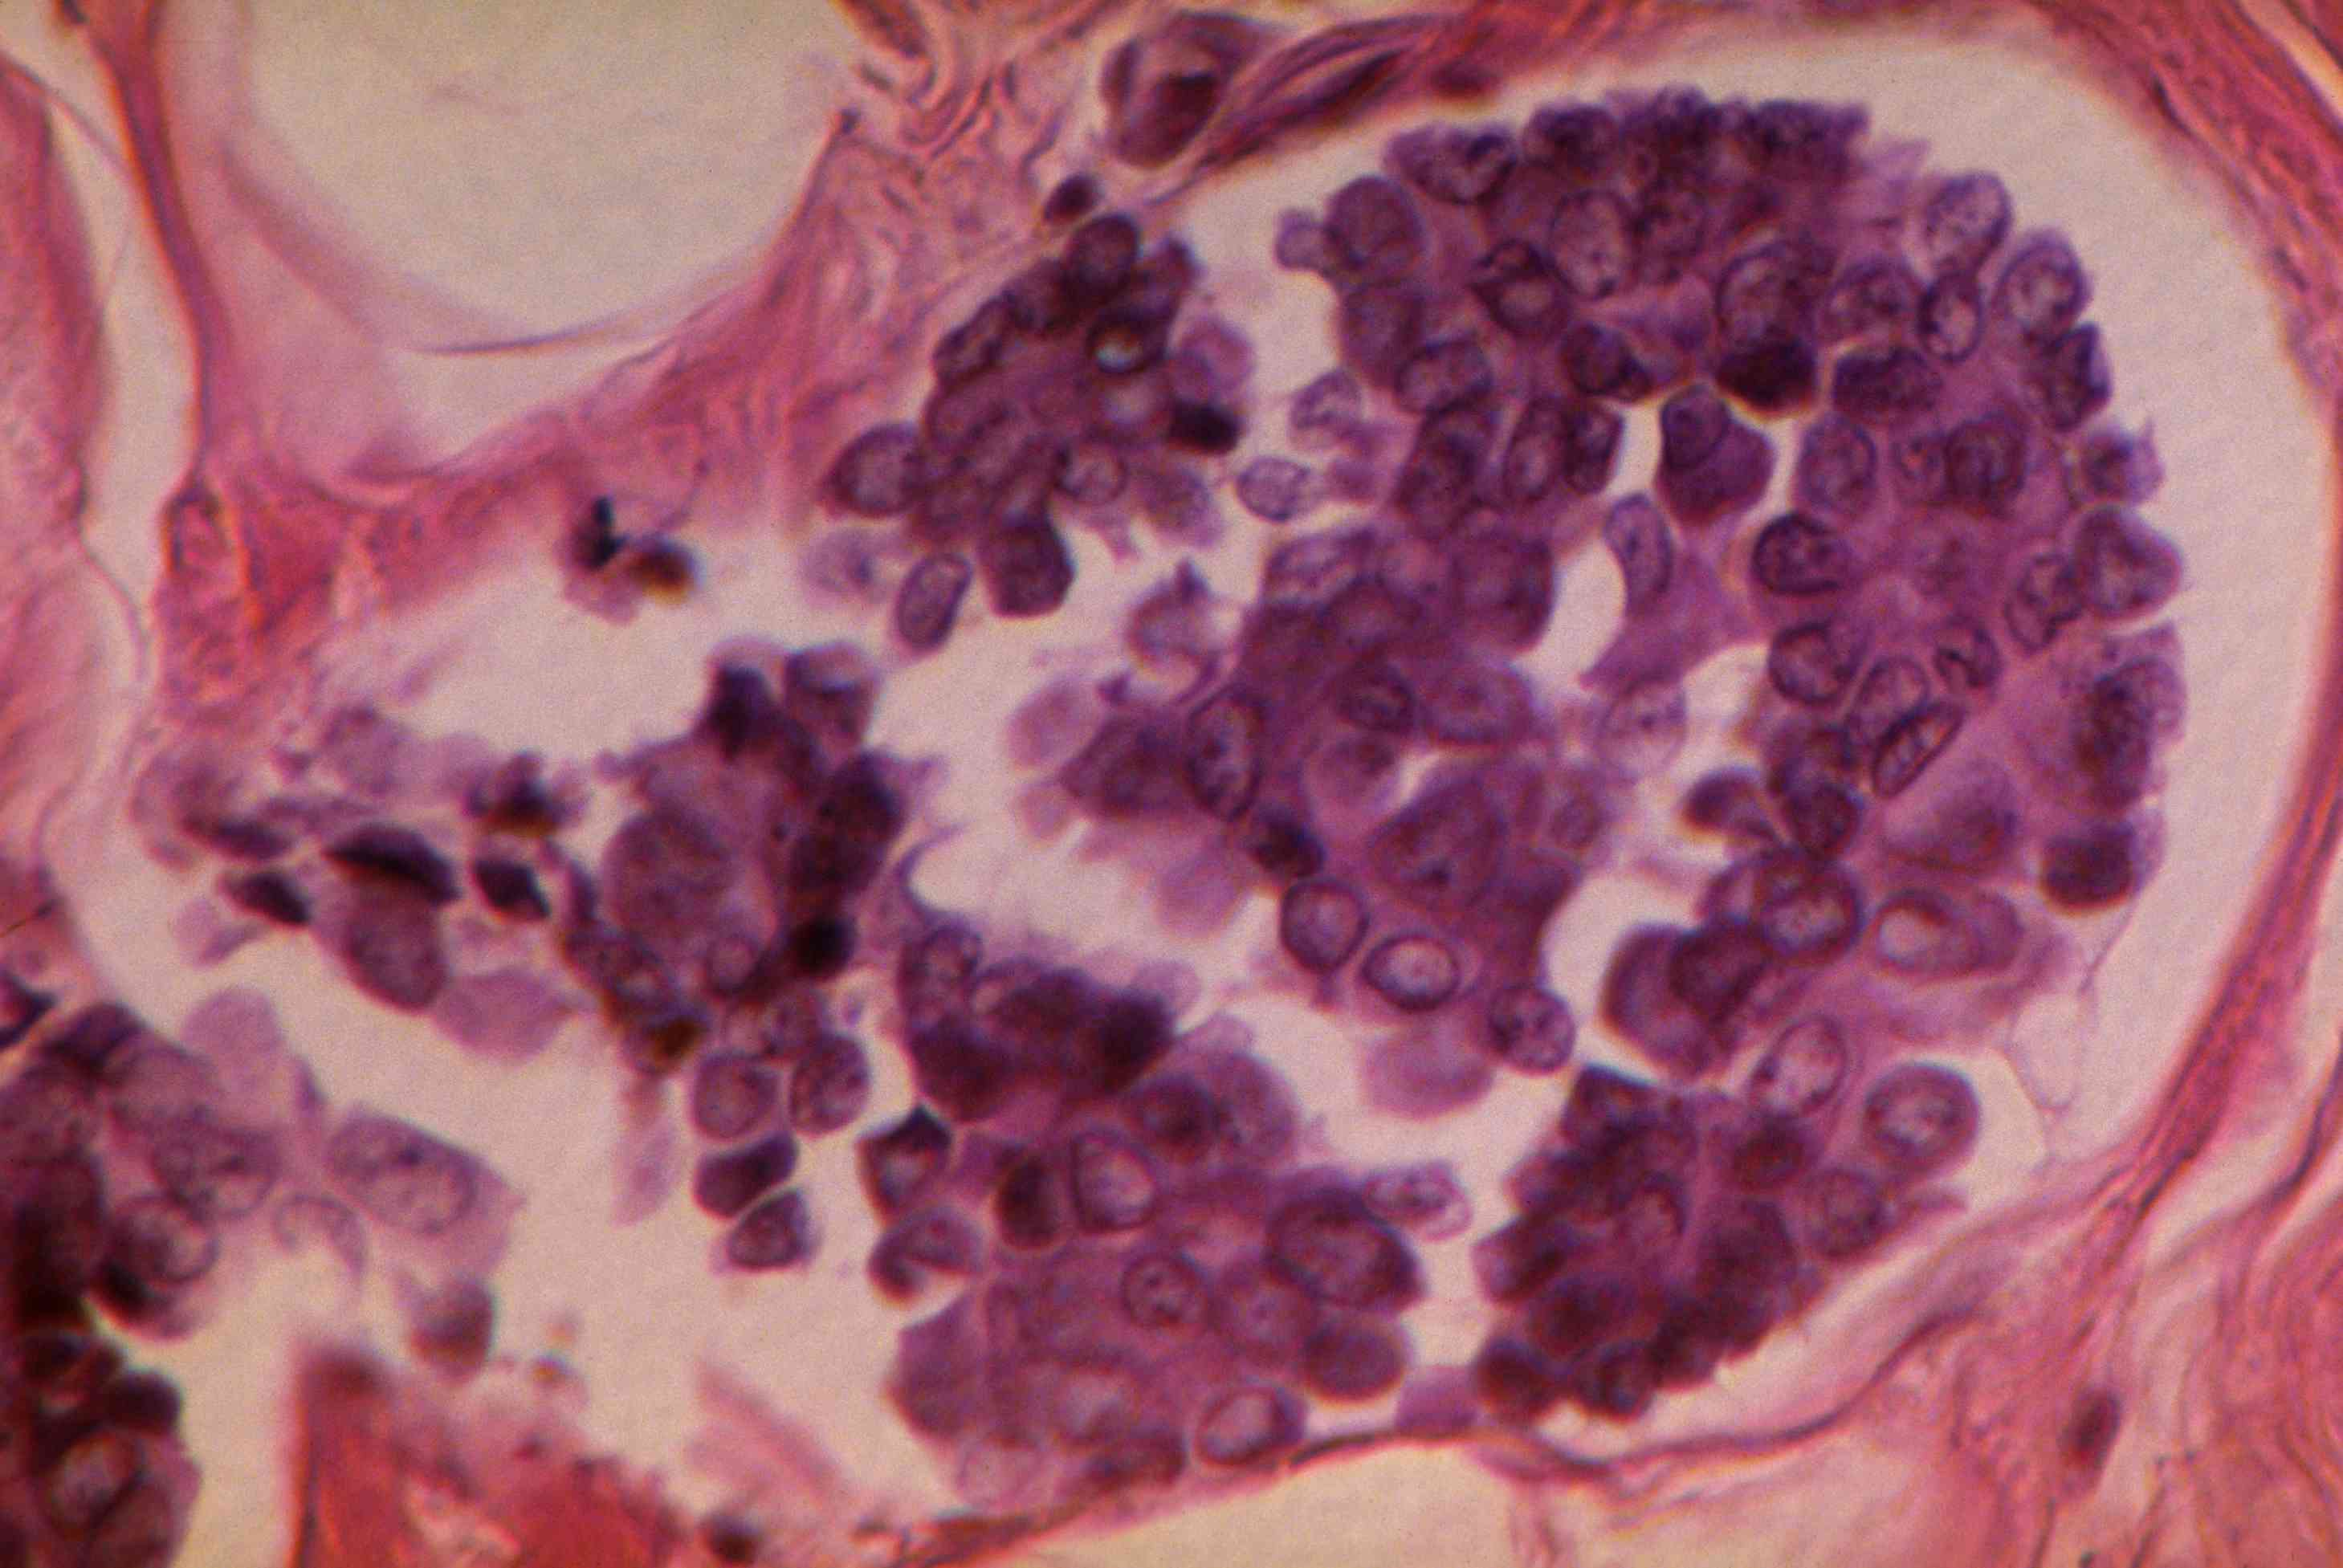 Breast cancer. Magnification 150X.